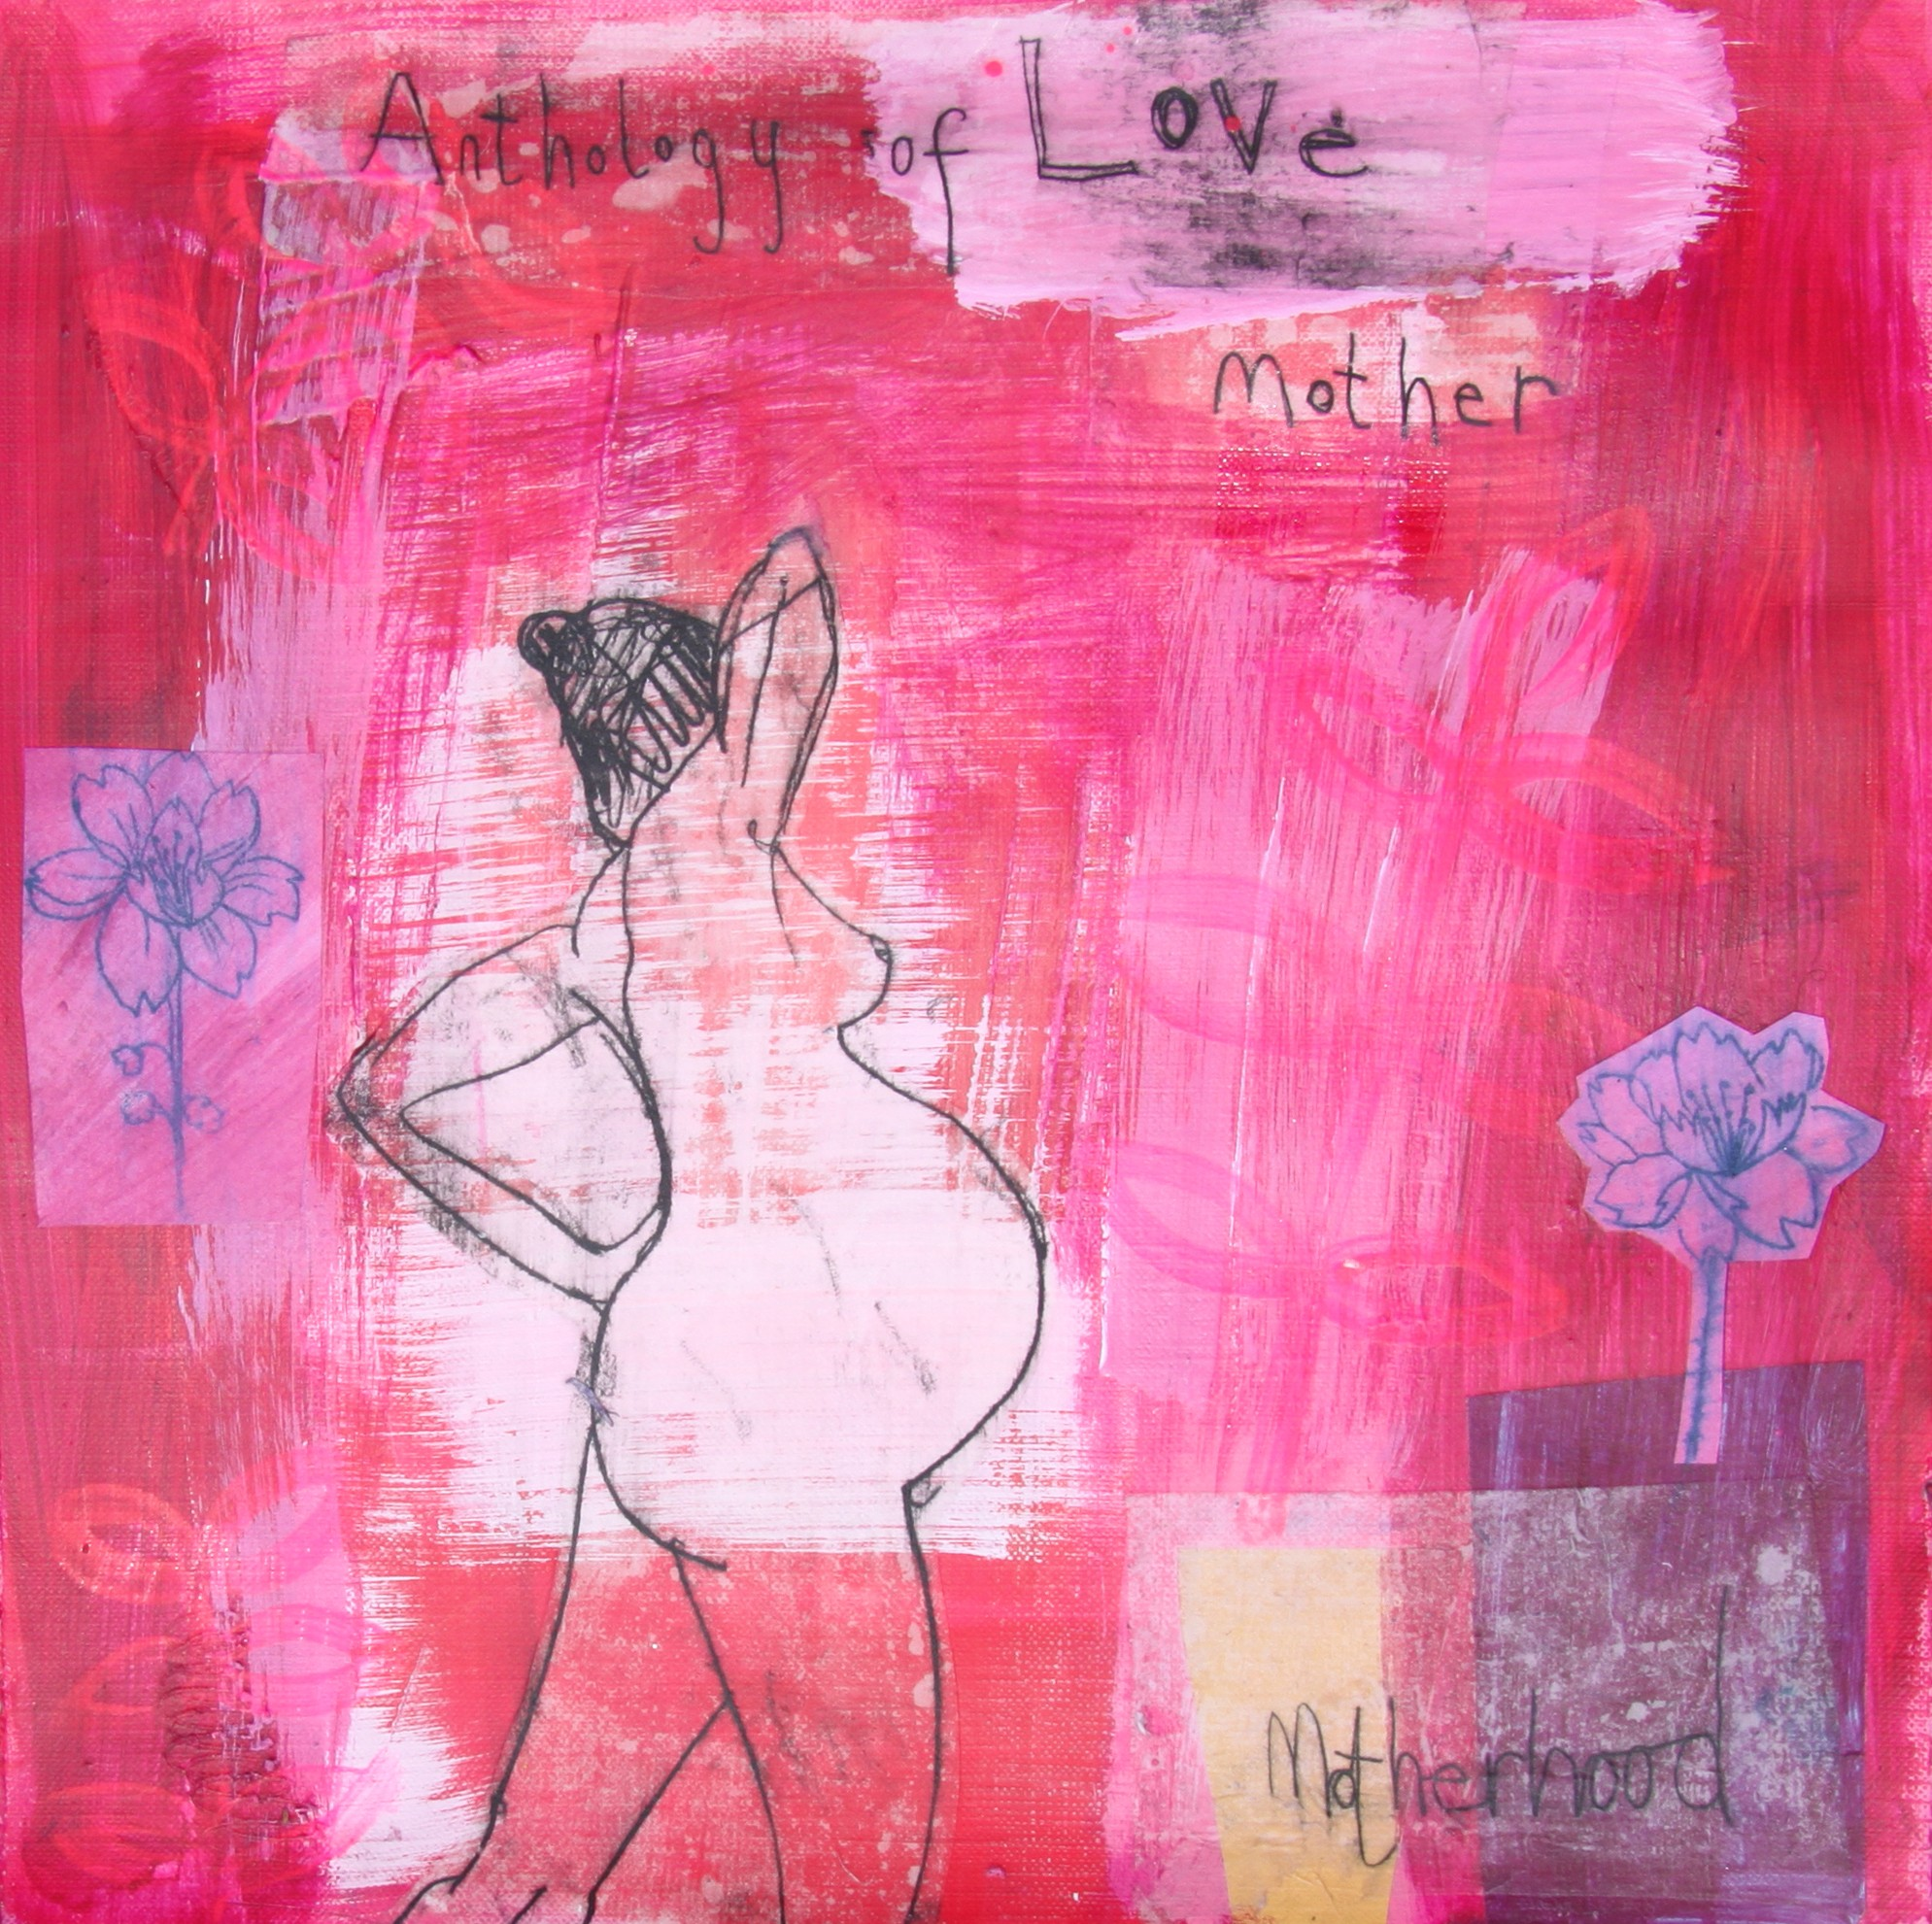 Transition to motherhood 30 x 30 cms mixed media on paper by Clare Haxby